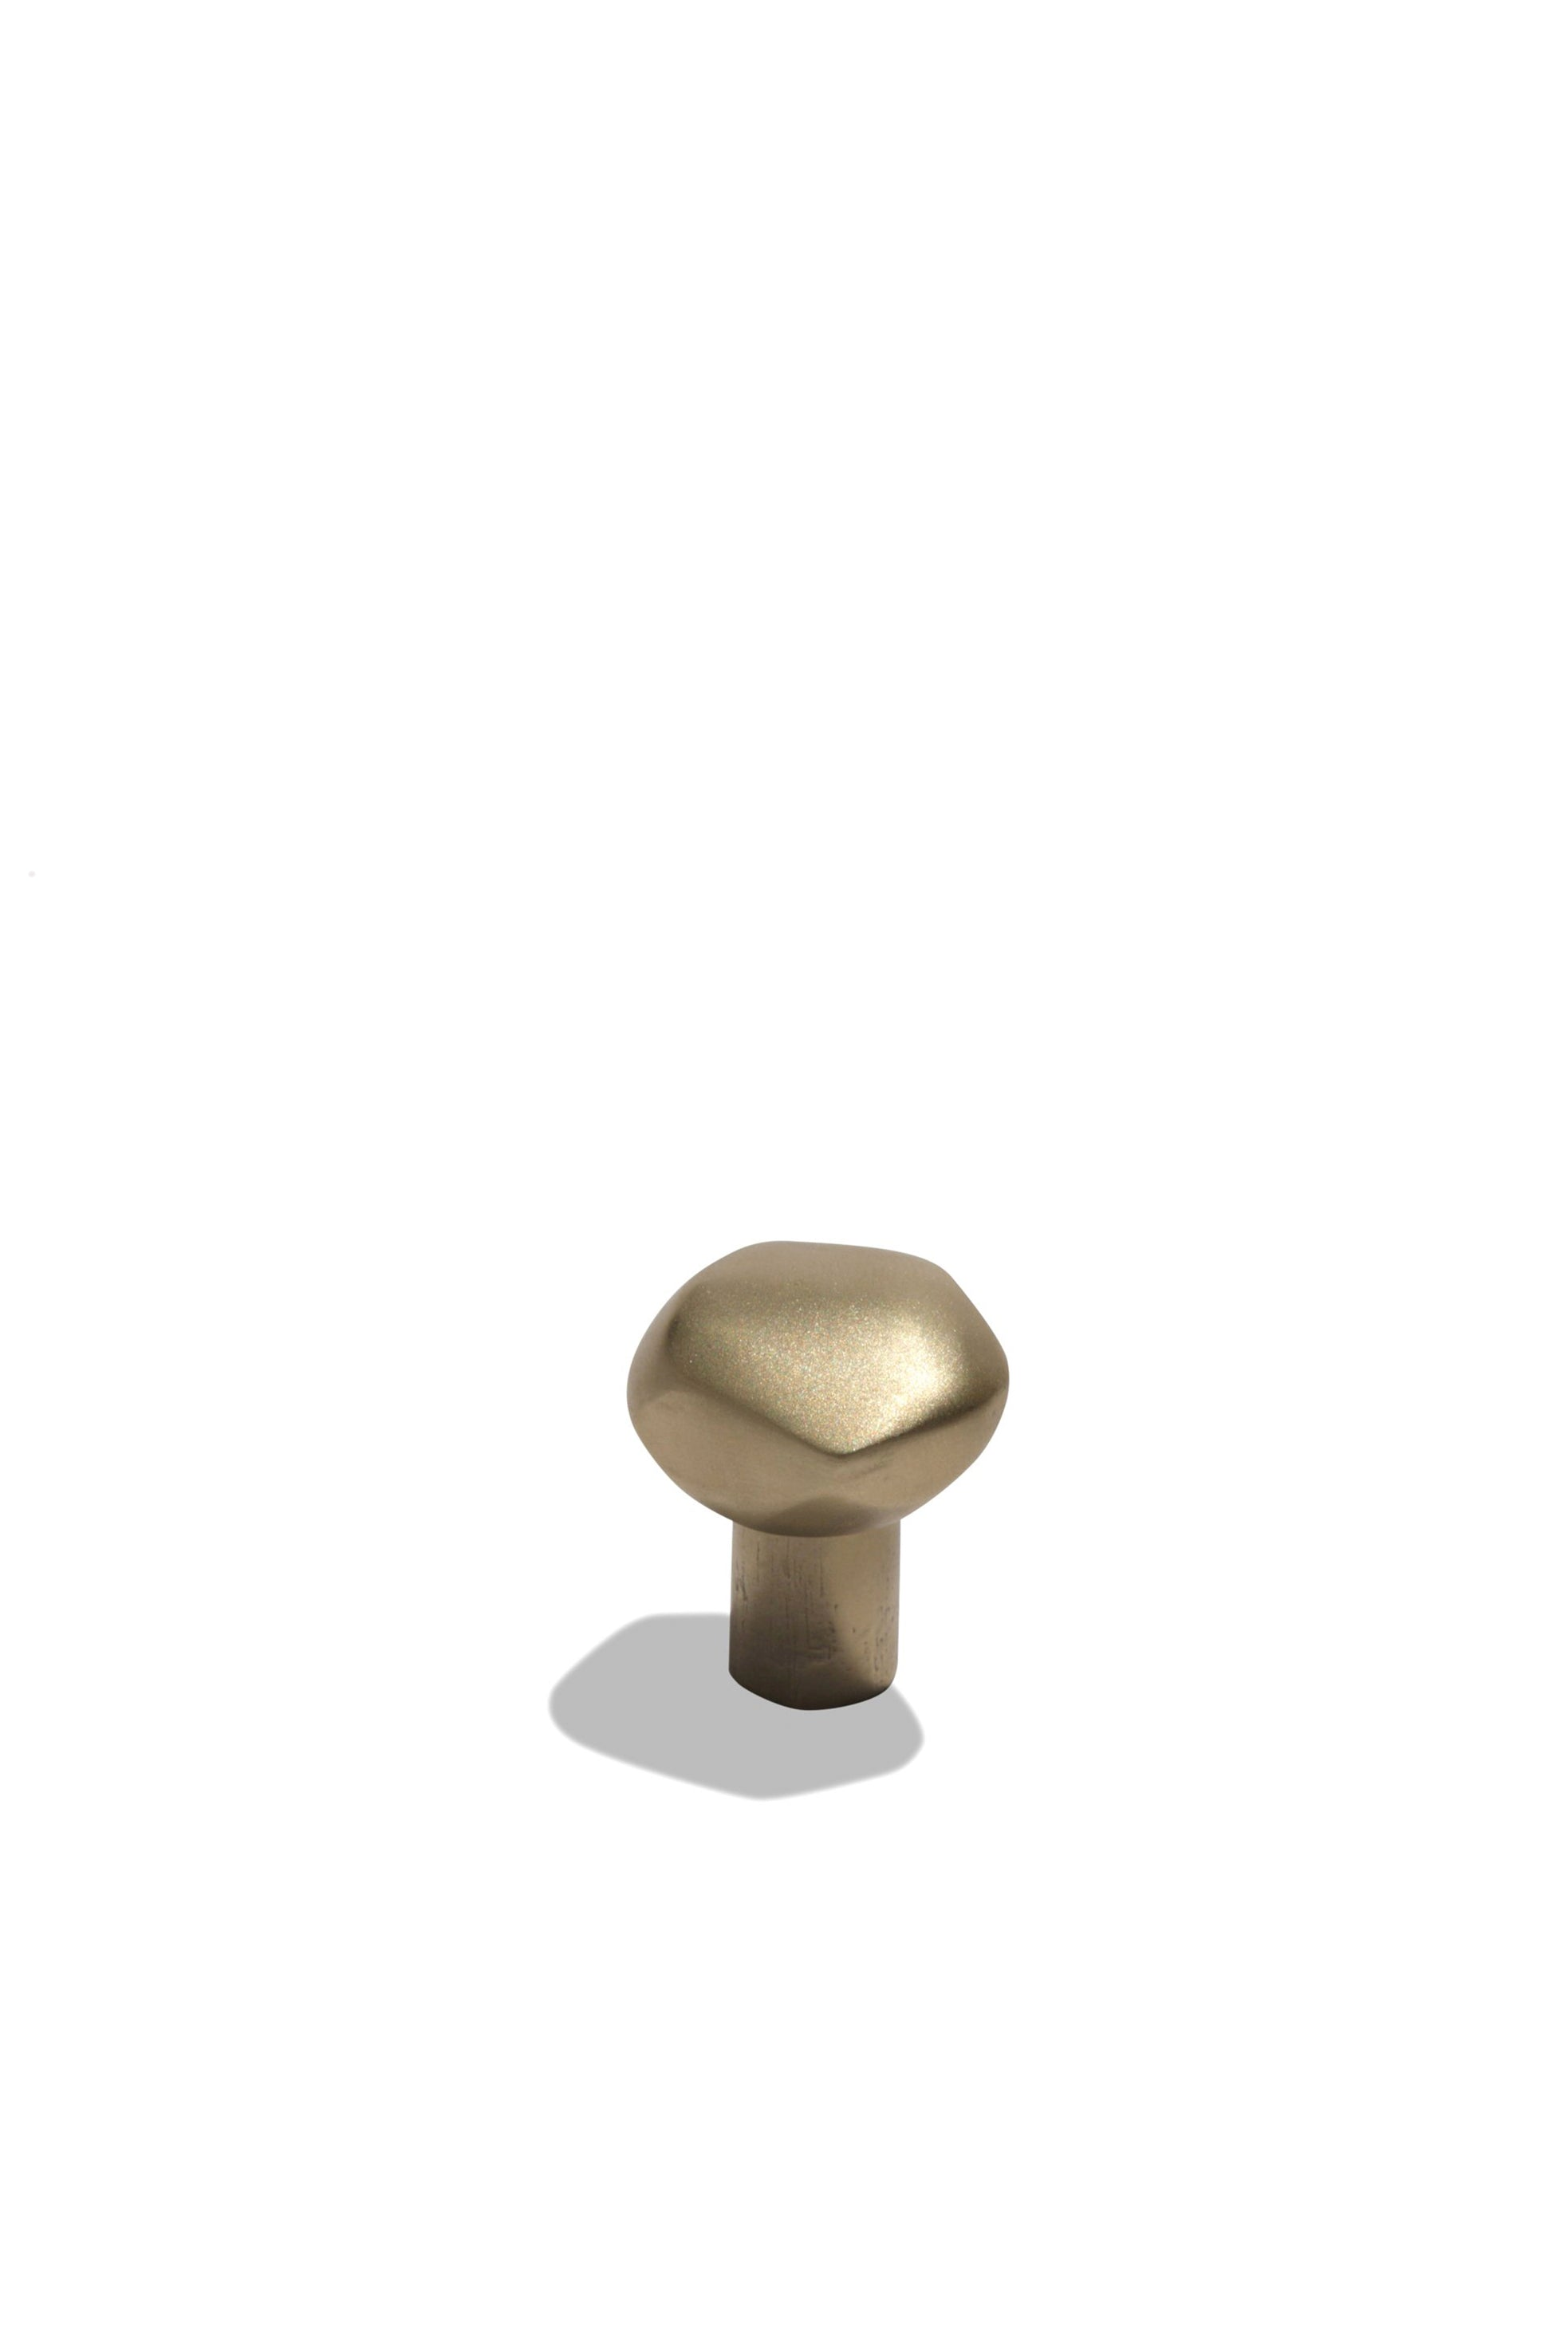 Fort Makers Brass 'Pebble' Pull